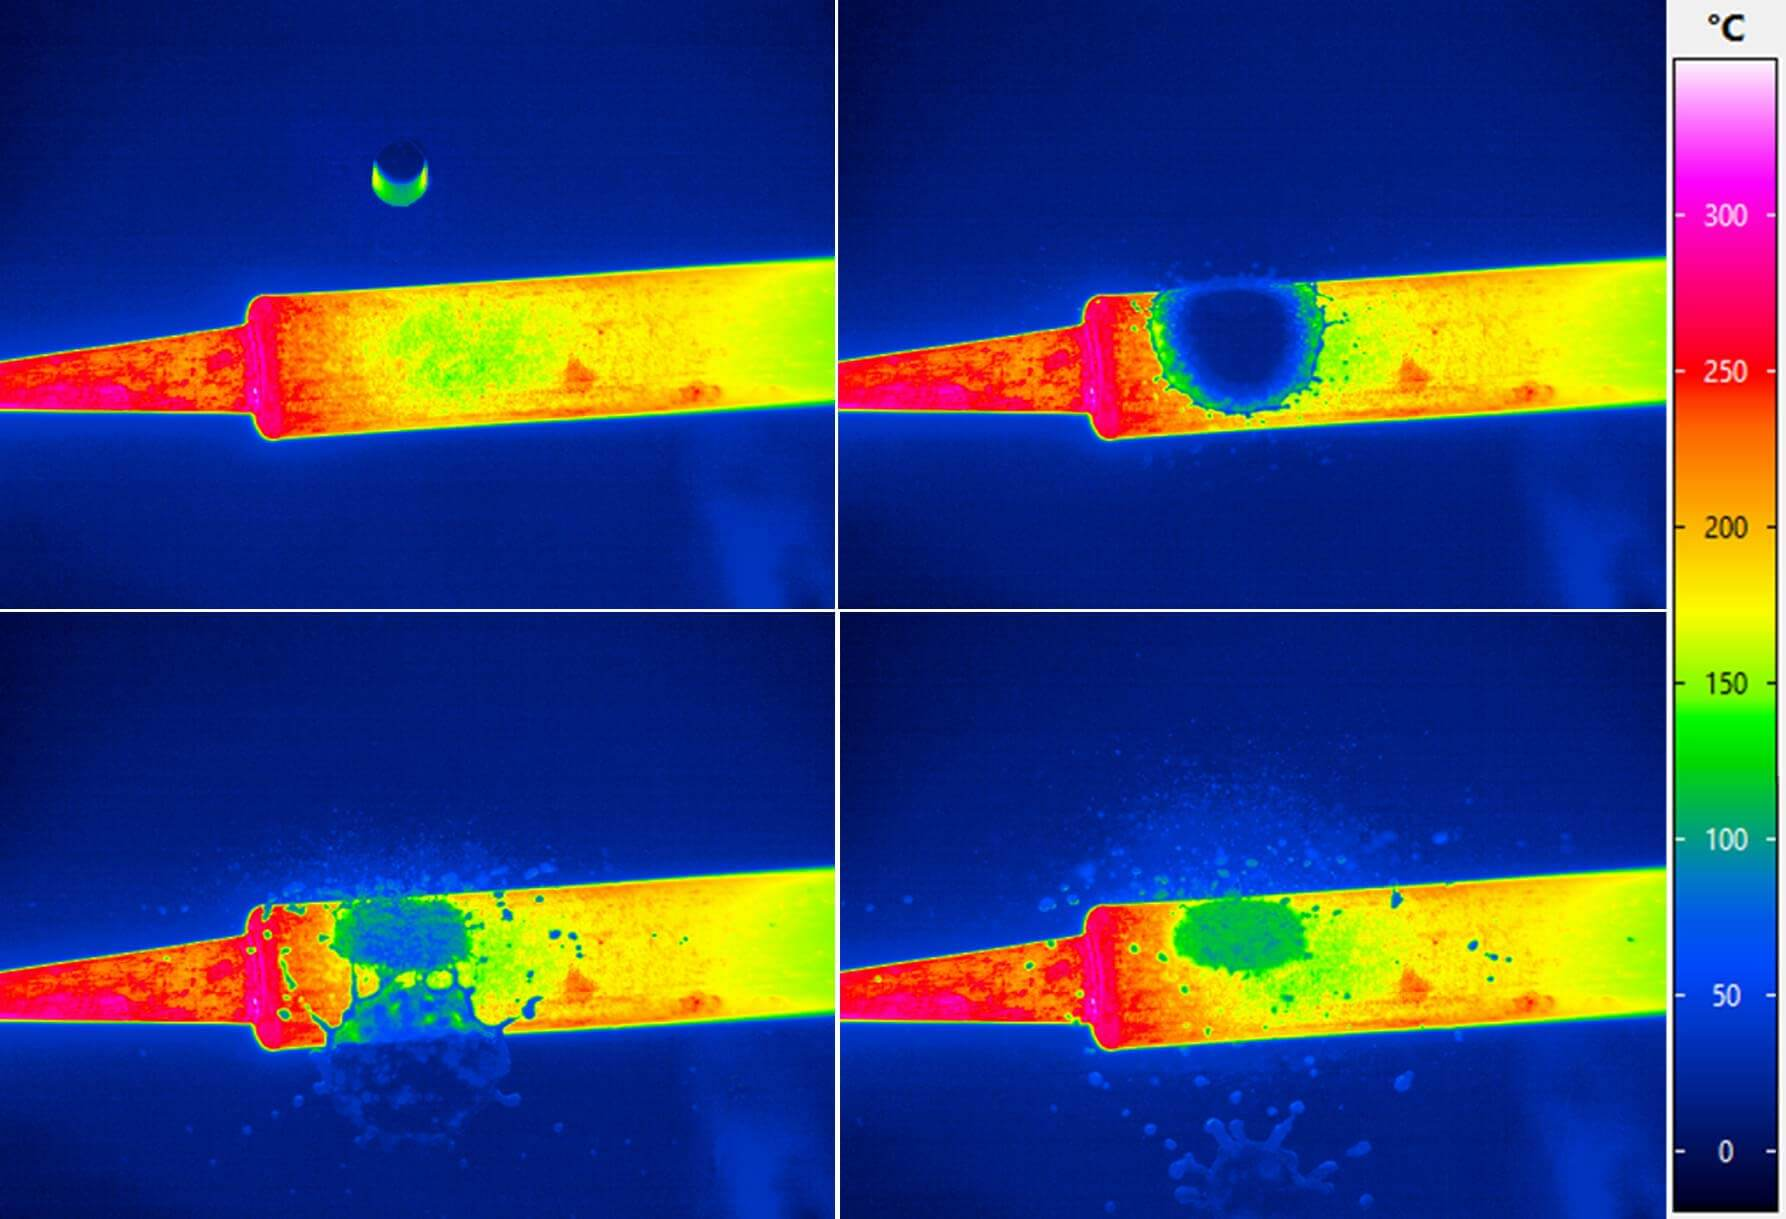 Thermal image of a soldering iron when a drop of water strikes